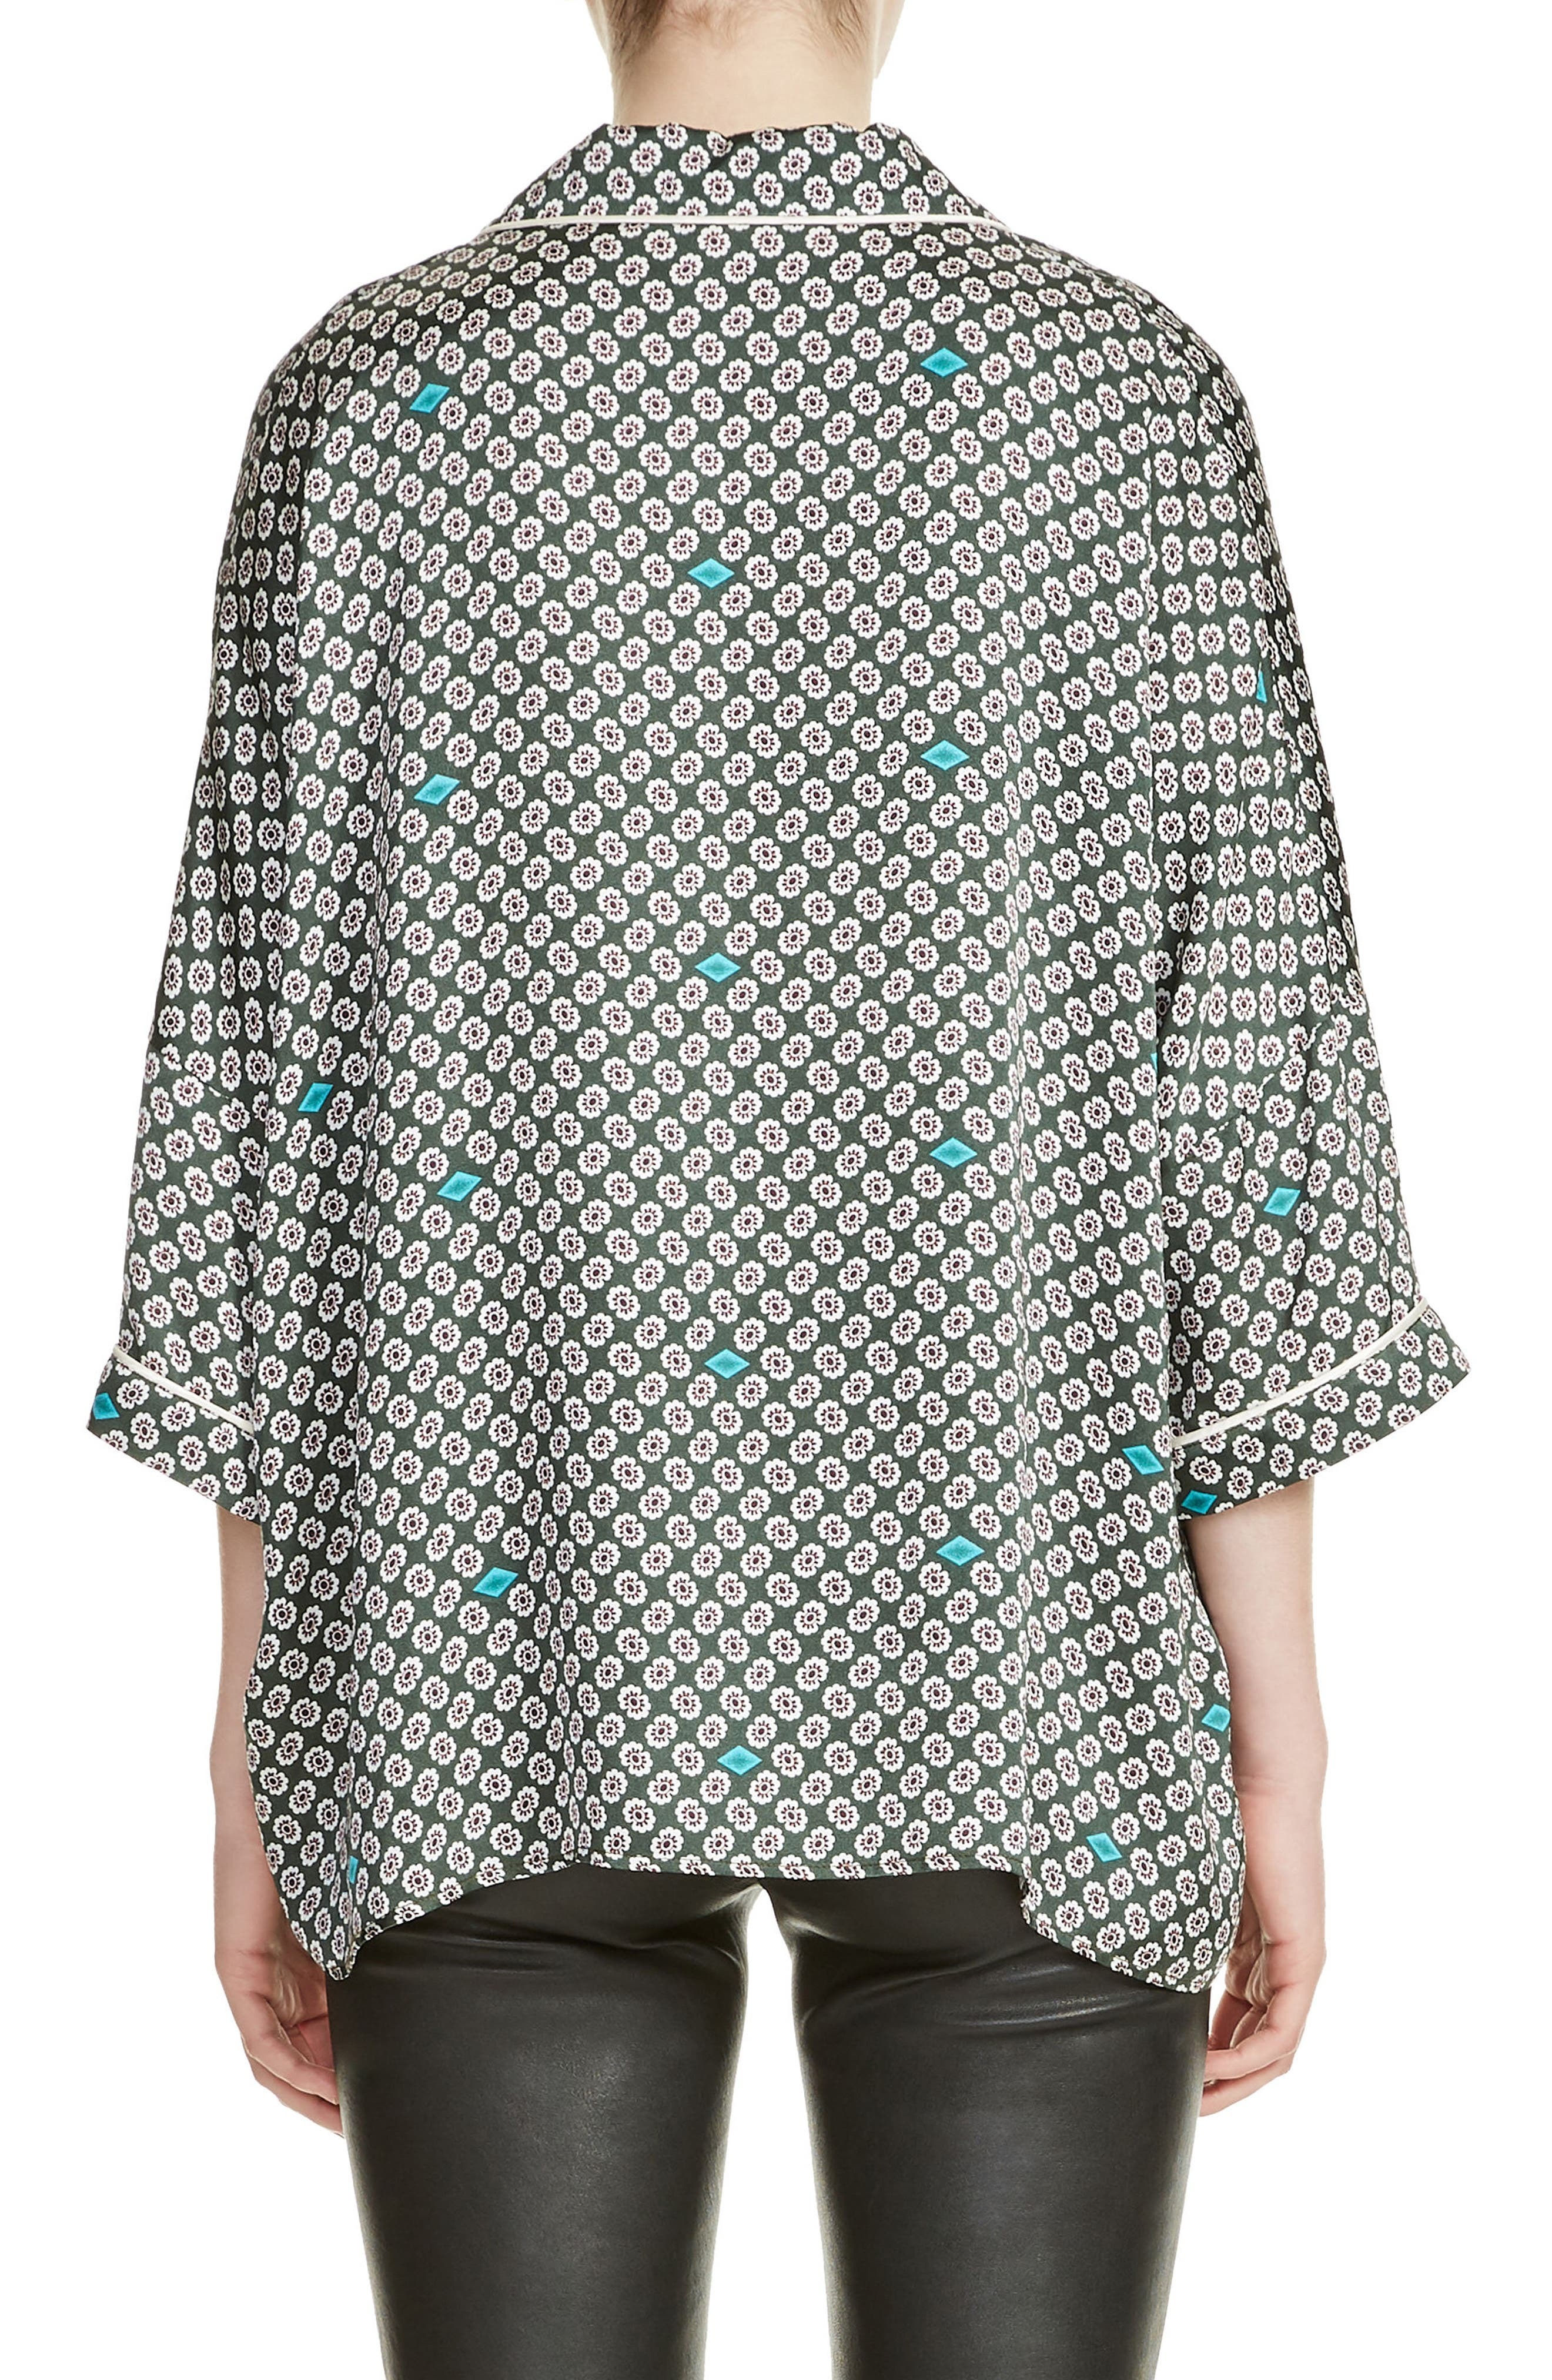 Charline Print High/Low Blouse,                             Alternate thumbnail 2, color,